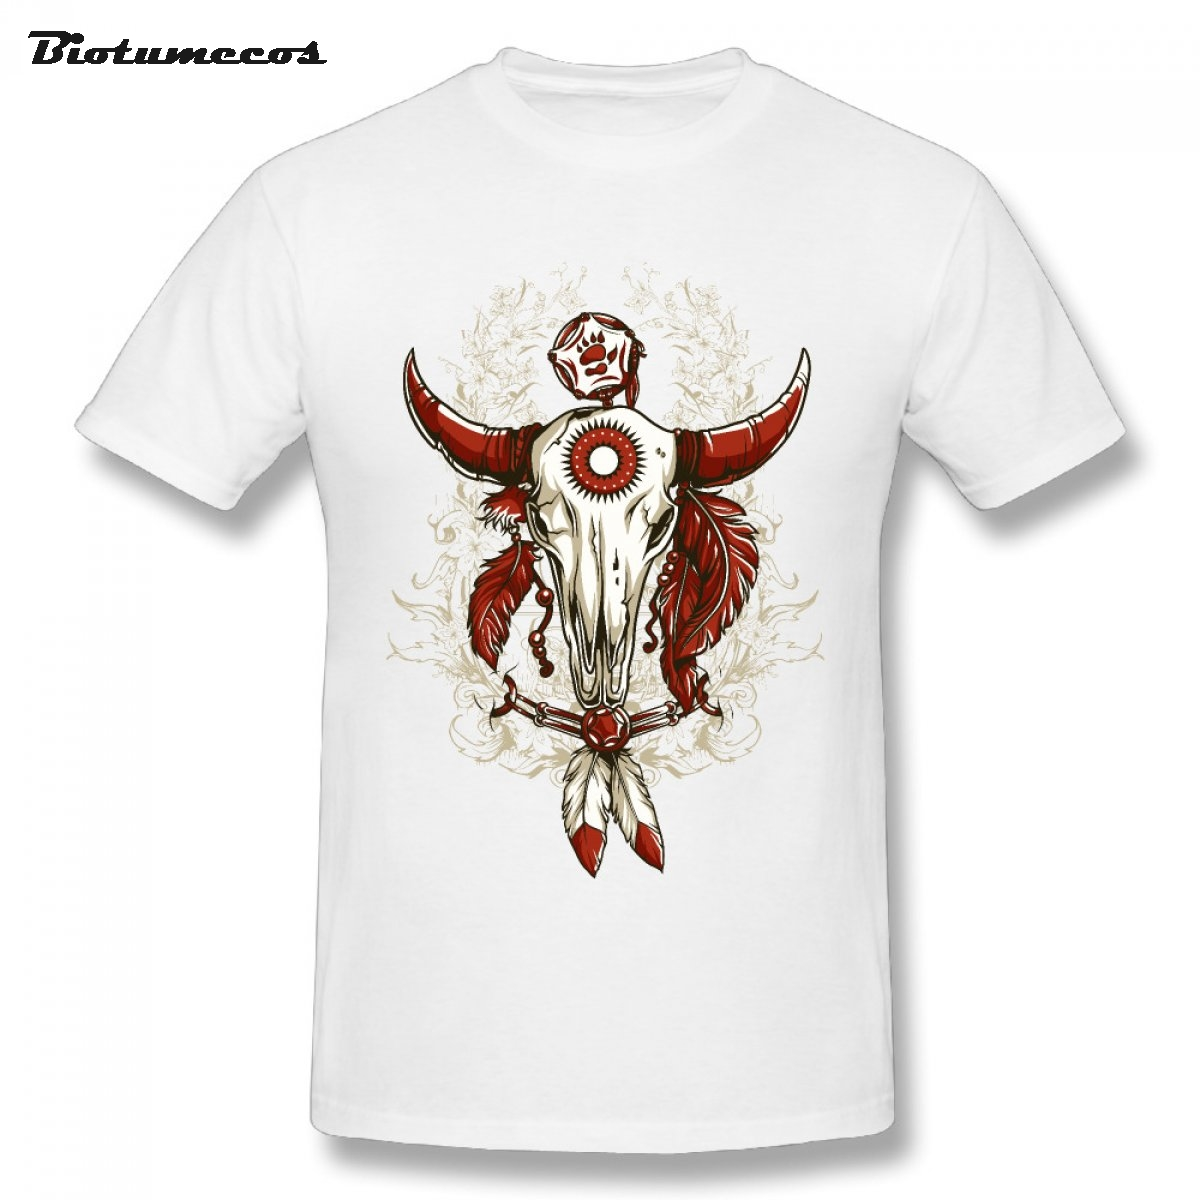 7327f8a6420ad0 Summer Men T shirt Goat Skull Tied With Shackle Red Horns Printed Short  Sleeve O-neck 100% Cotton Tees Shirt Top Clothing MTK151